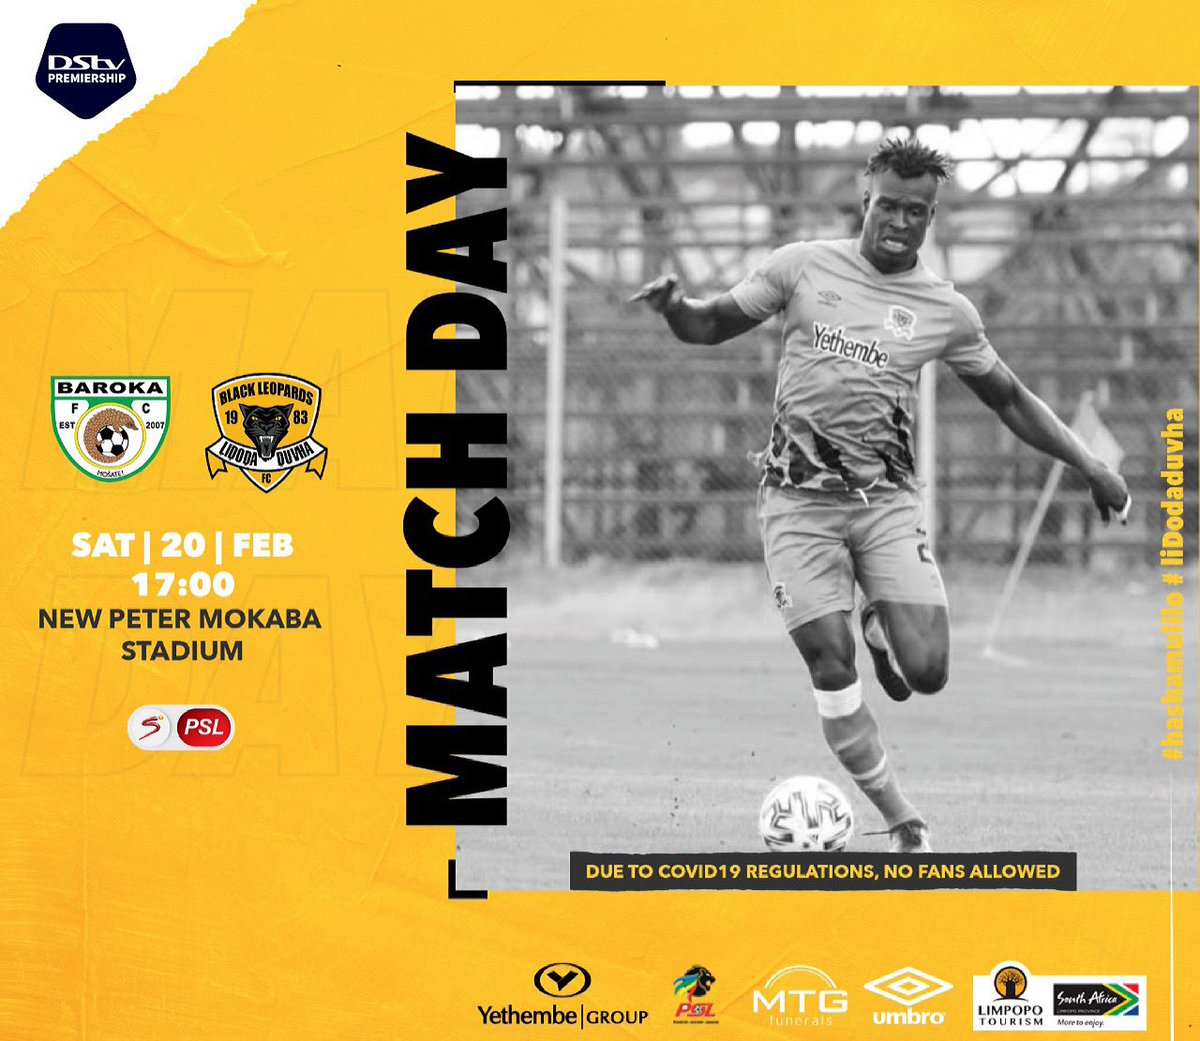 🚨 Match Day 🏆 #DstvPrem ⚽️  Baroka Fc vs Black Leopards 🗓 Sat 20 Feb 2021 🏟 New Peter Mokaba  Stadium  ⏰17:00 📺 SSPSL  ⚠️ Due to Covid19 Regulations No fans allowed #HashaMulilo #LidodaDuvha https://t.co/Y8kO13UtjV